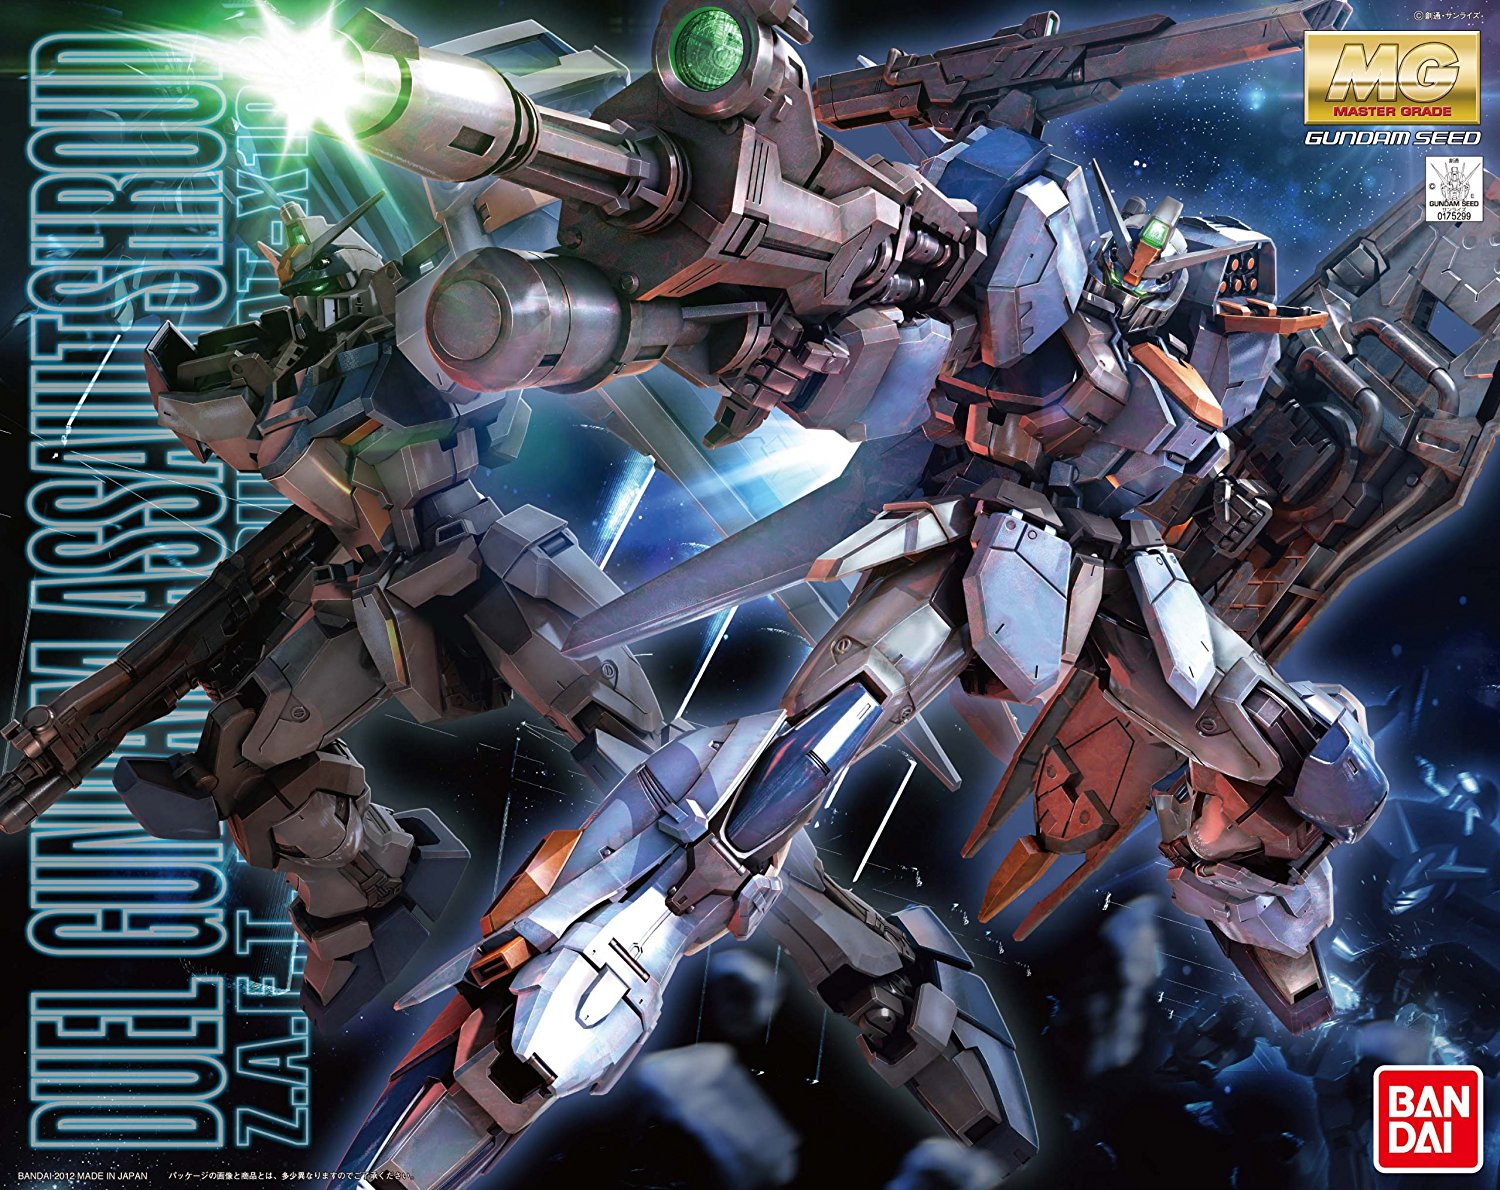 Bandai Gundam MG 151 1 100 Duel Assaultshroud Mobile Suit Assemble Model Kits Action Figures Plastic